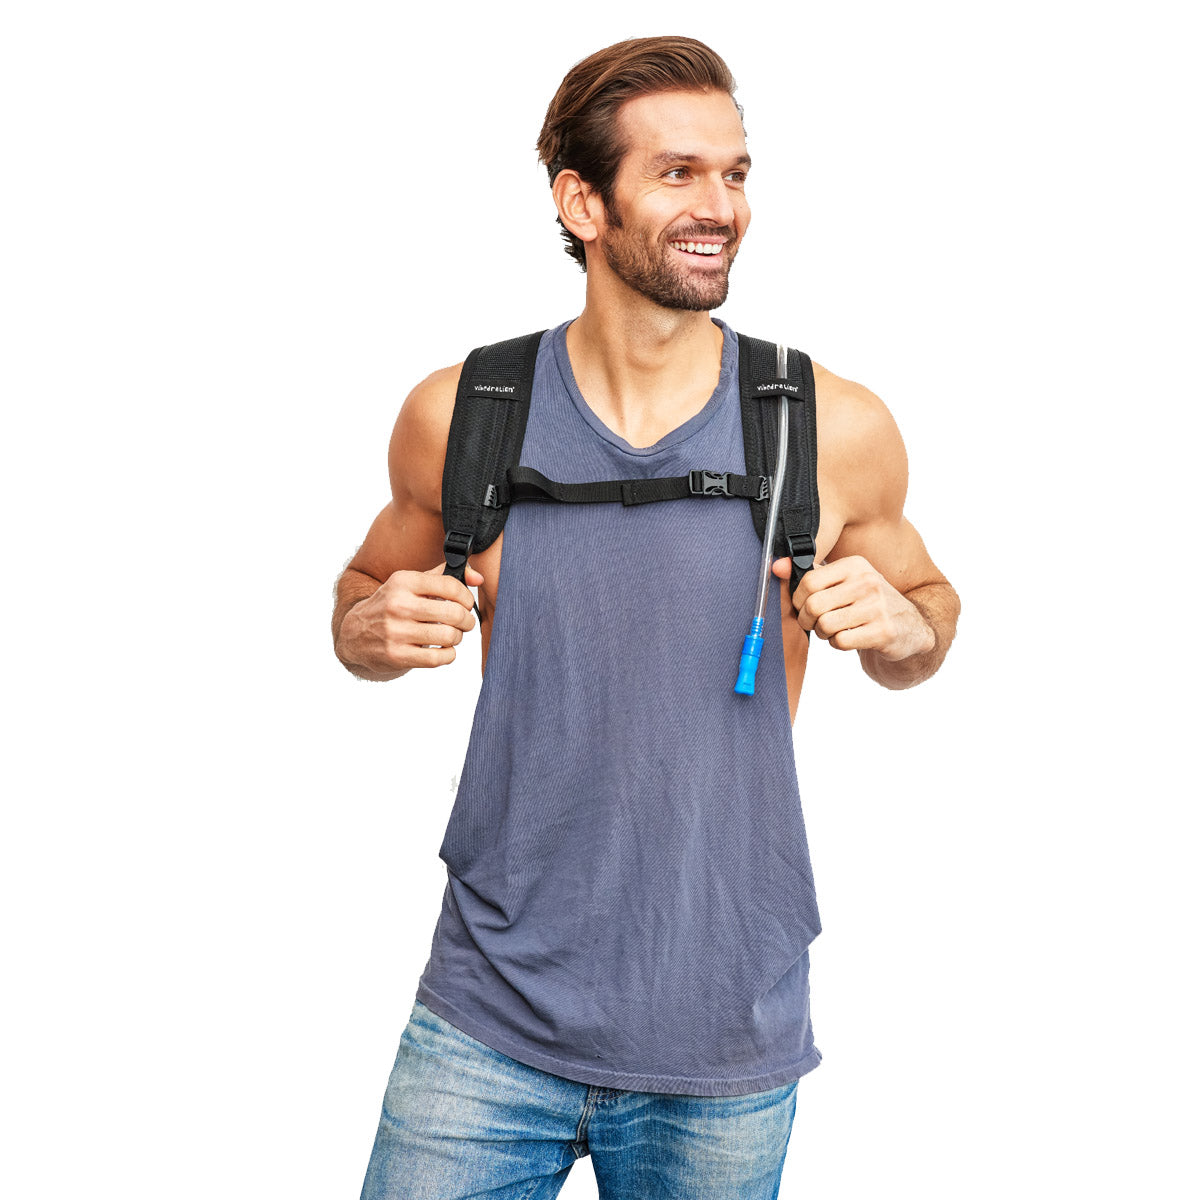 Front view of male wearing single pocket black hydration pack